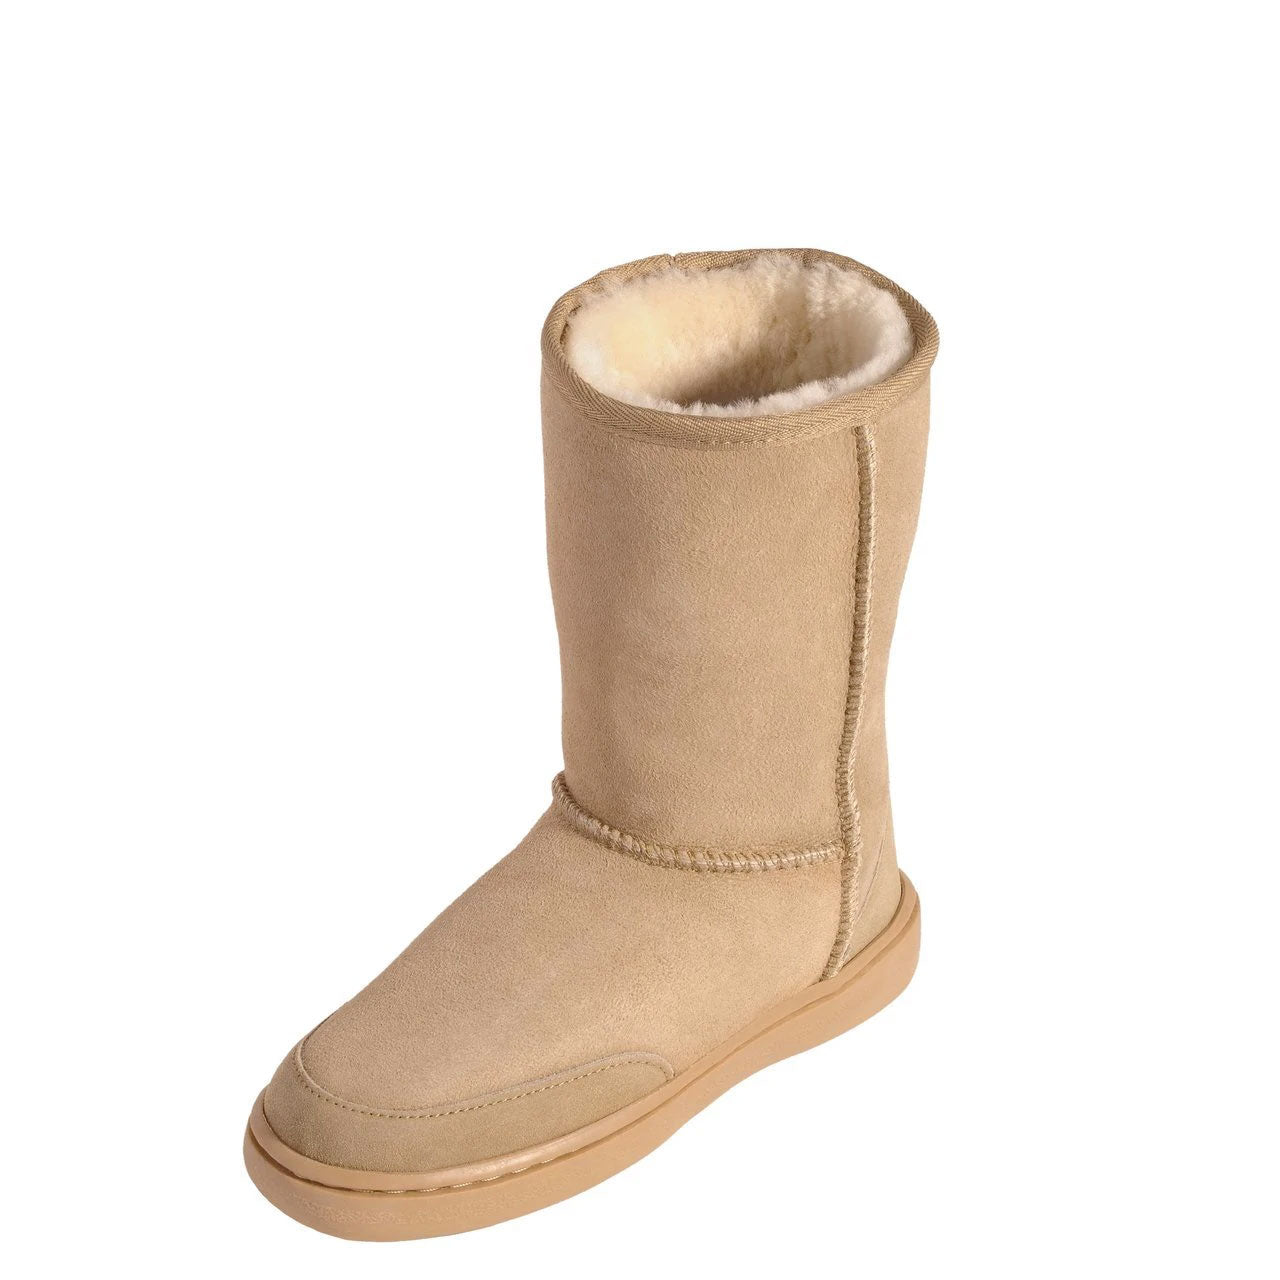 Mi Woollies Malibu Short Ugg Boot